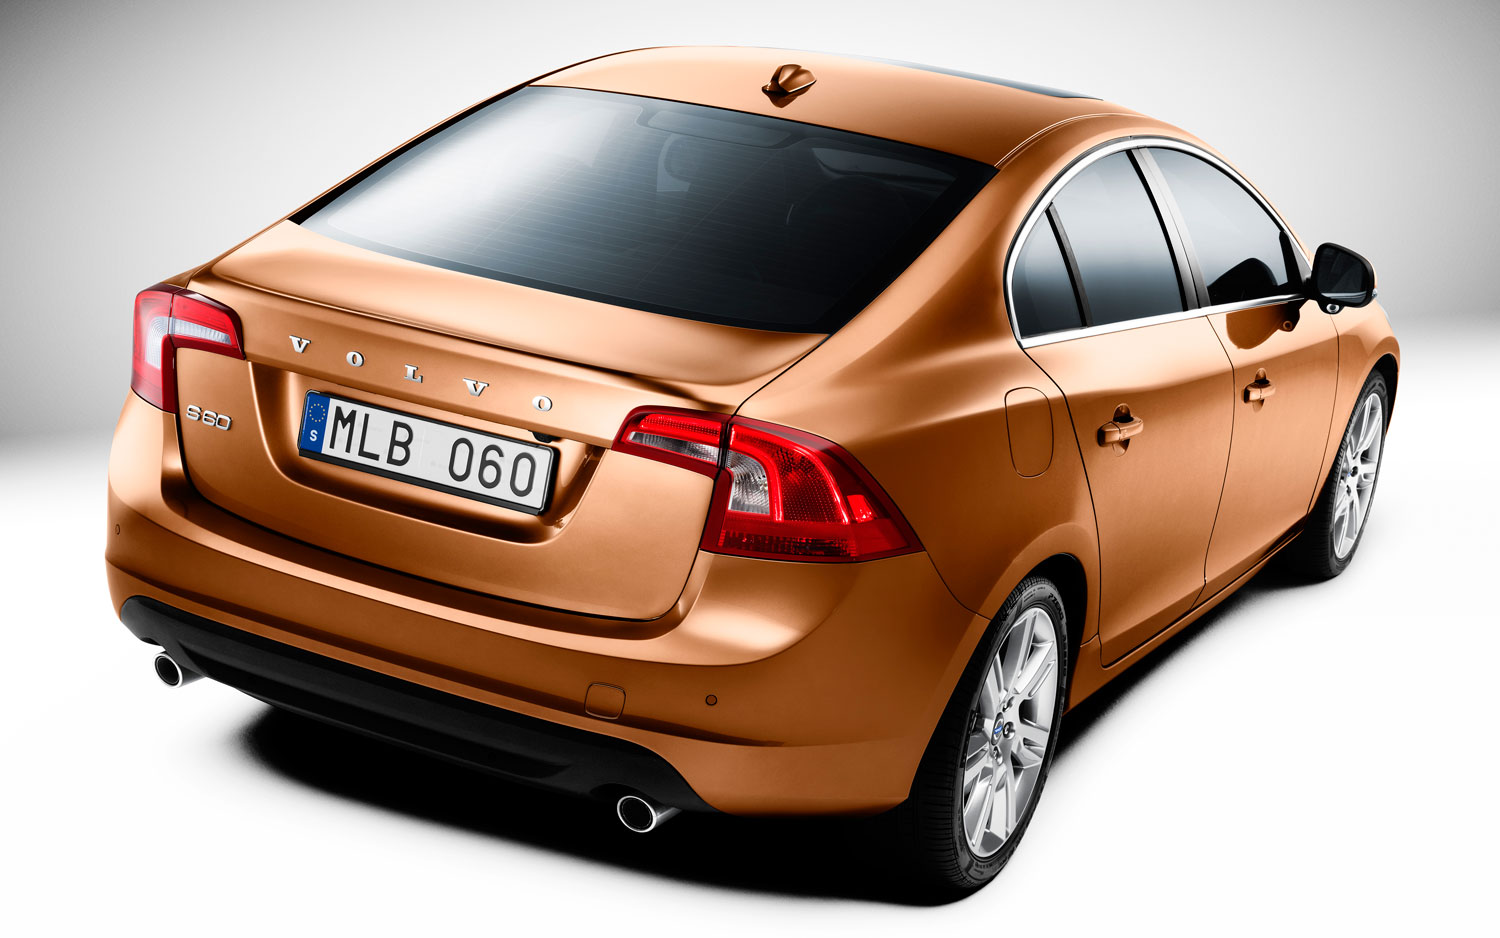 2012 Volvo S60 Recalled for Fuel Pump Issues